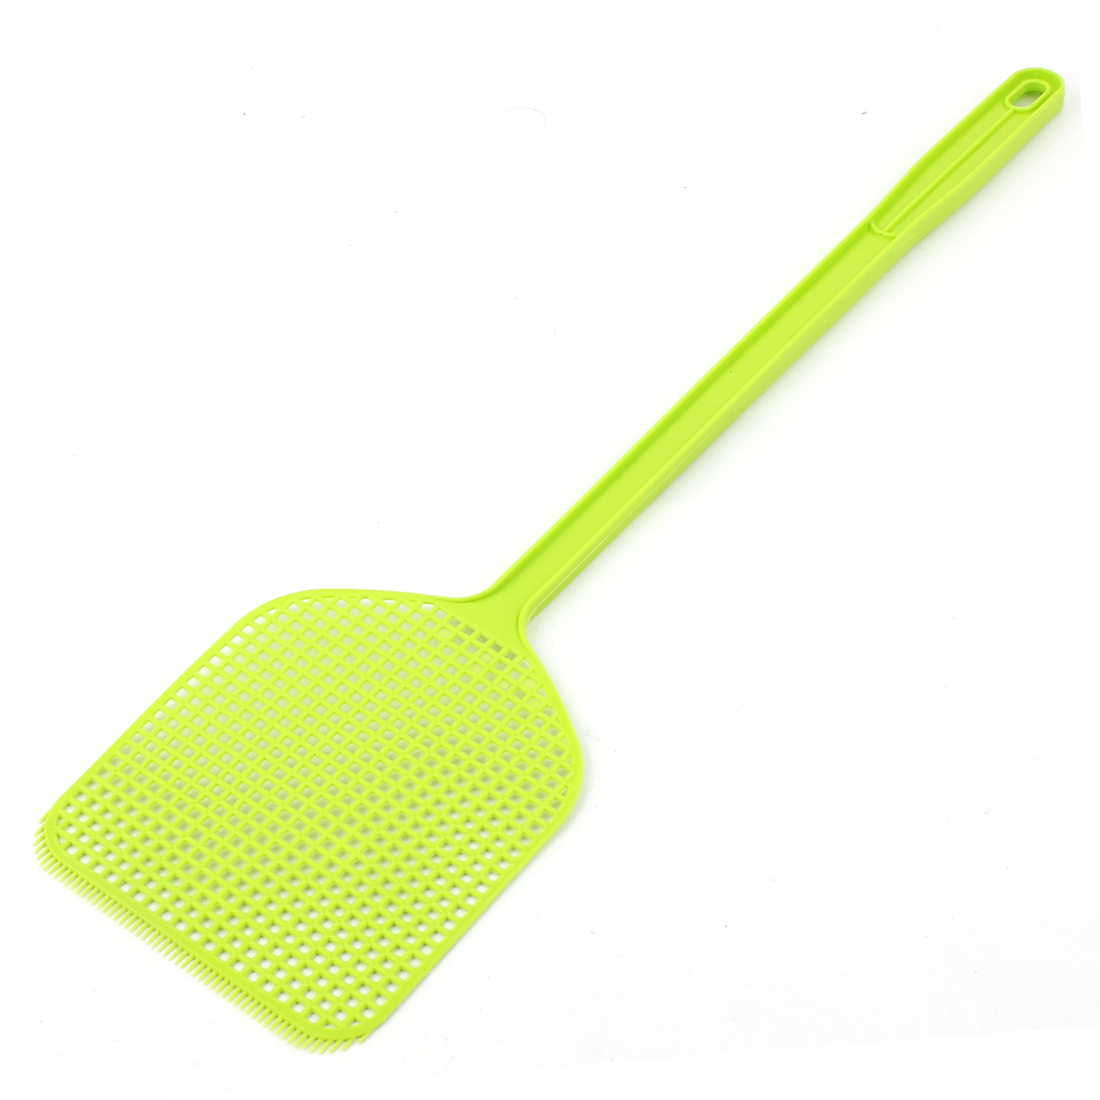 Yellowgreen Plastic Fly Swatter Bug Insect Wasps Pest Killer Swat Catcher 45cm